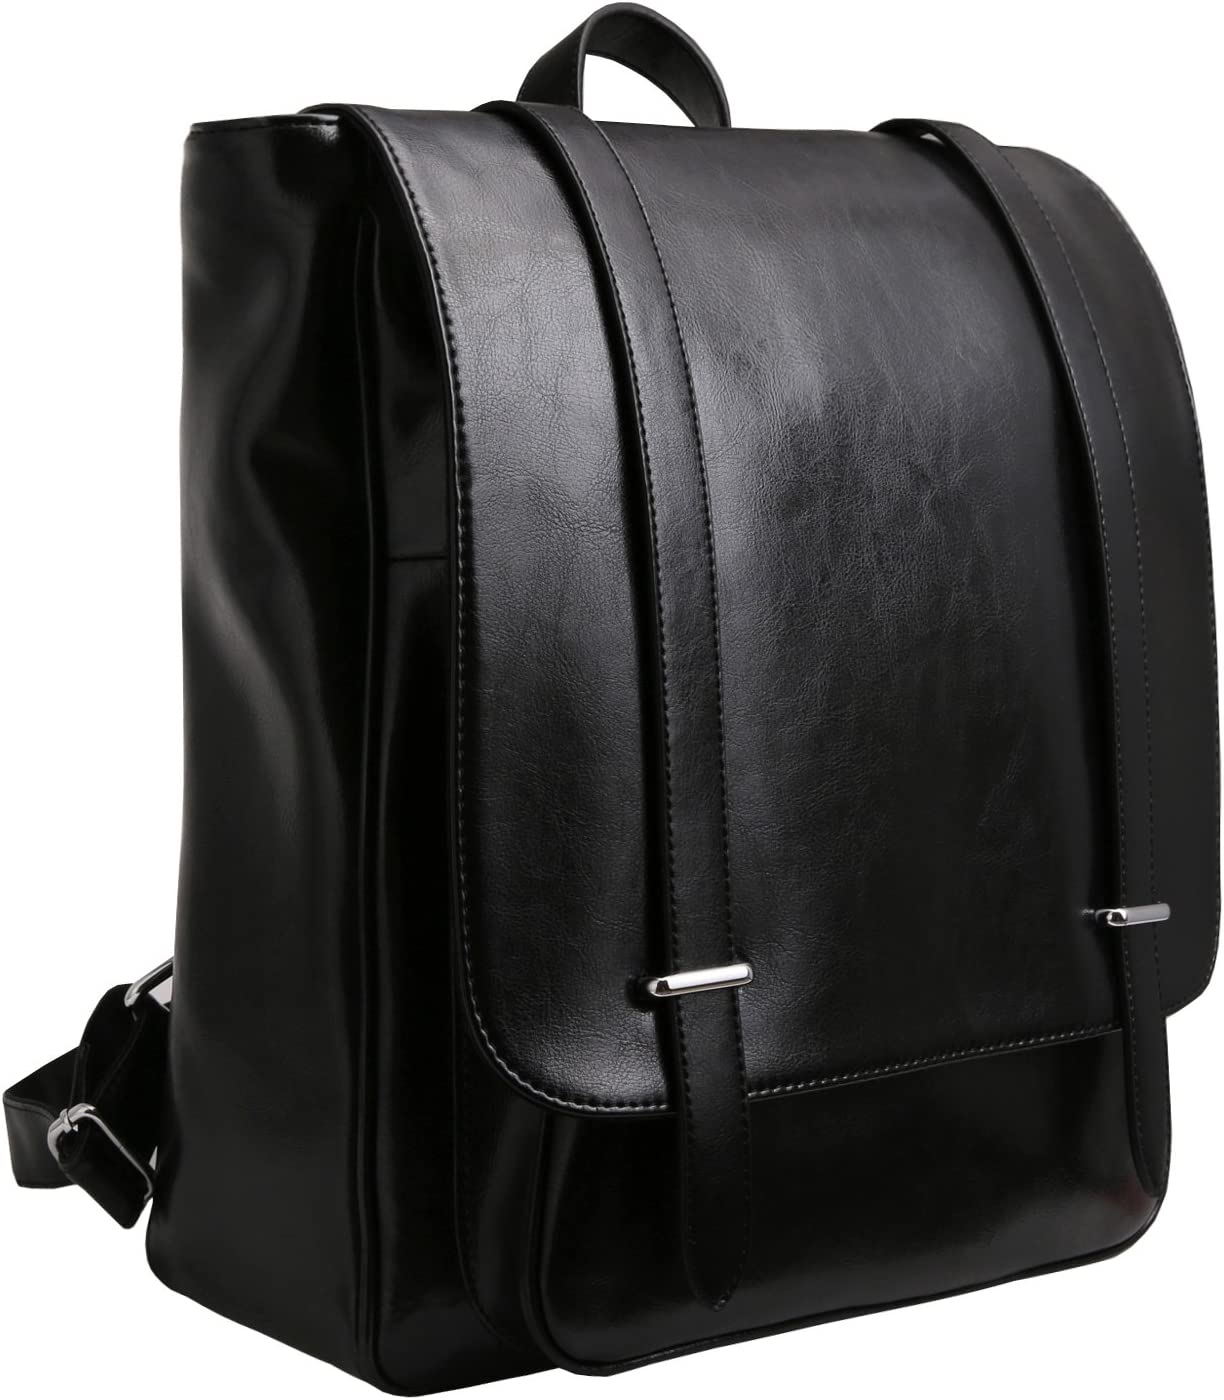 Iswee Unisex Leather Backpack Casual Daypack for Women and Men Fit 14in Laptop Black